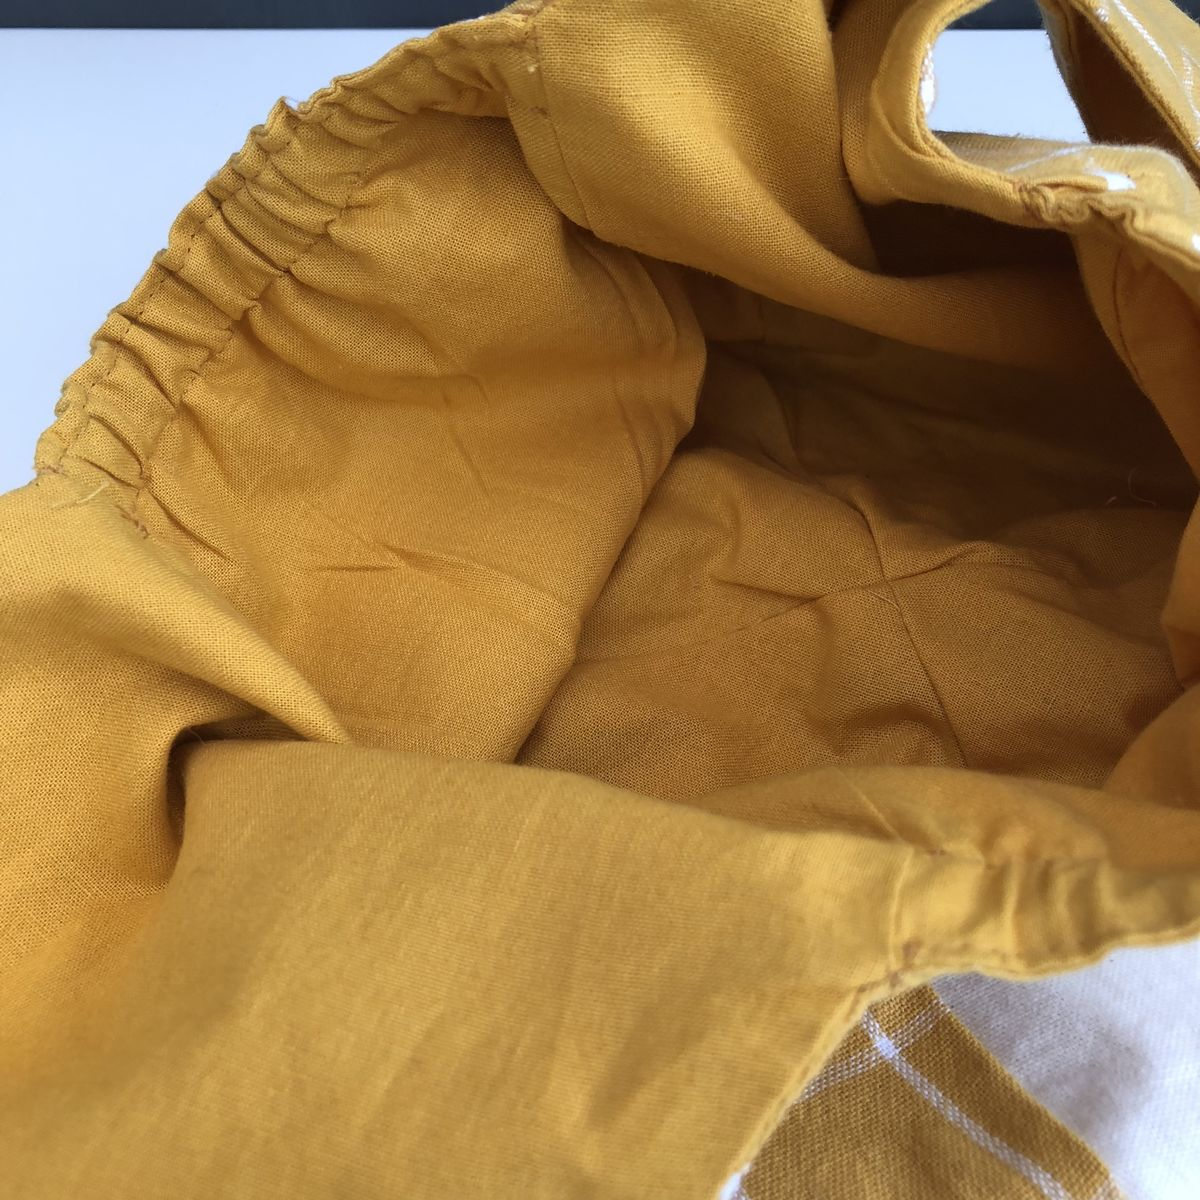 Japanese style cotton knotted fabric bag - mustard - product images  of